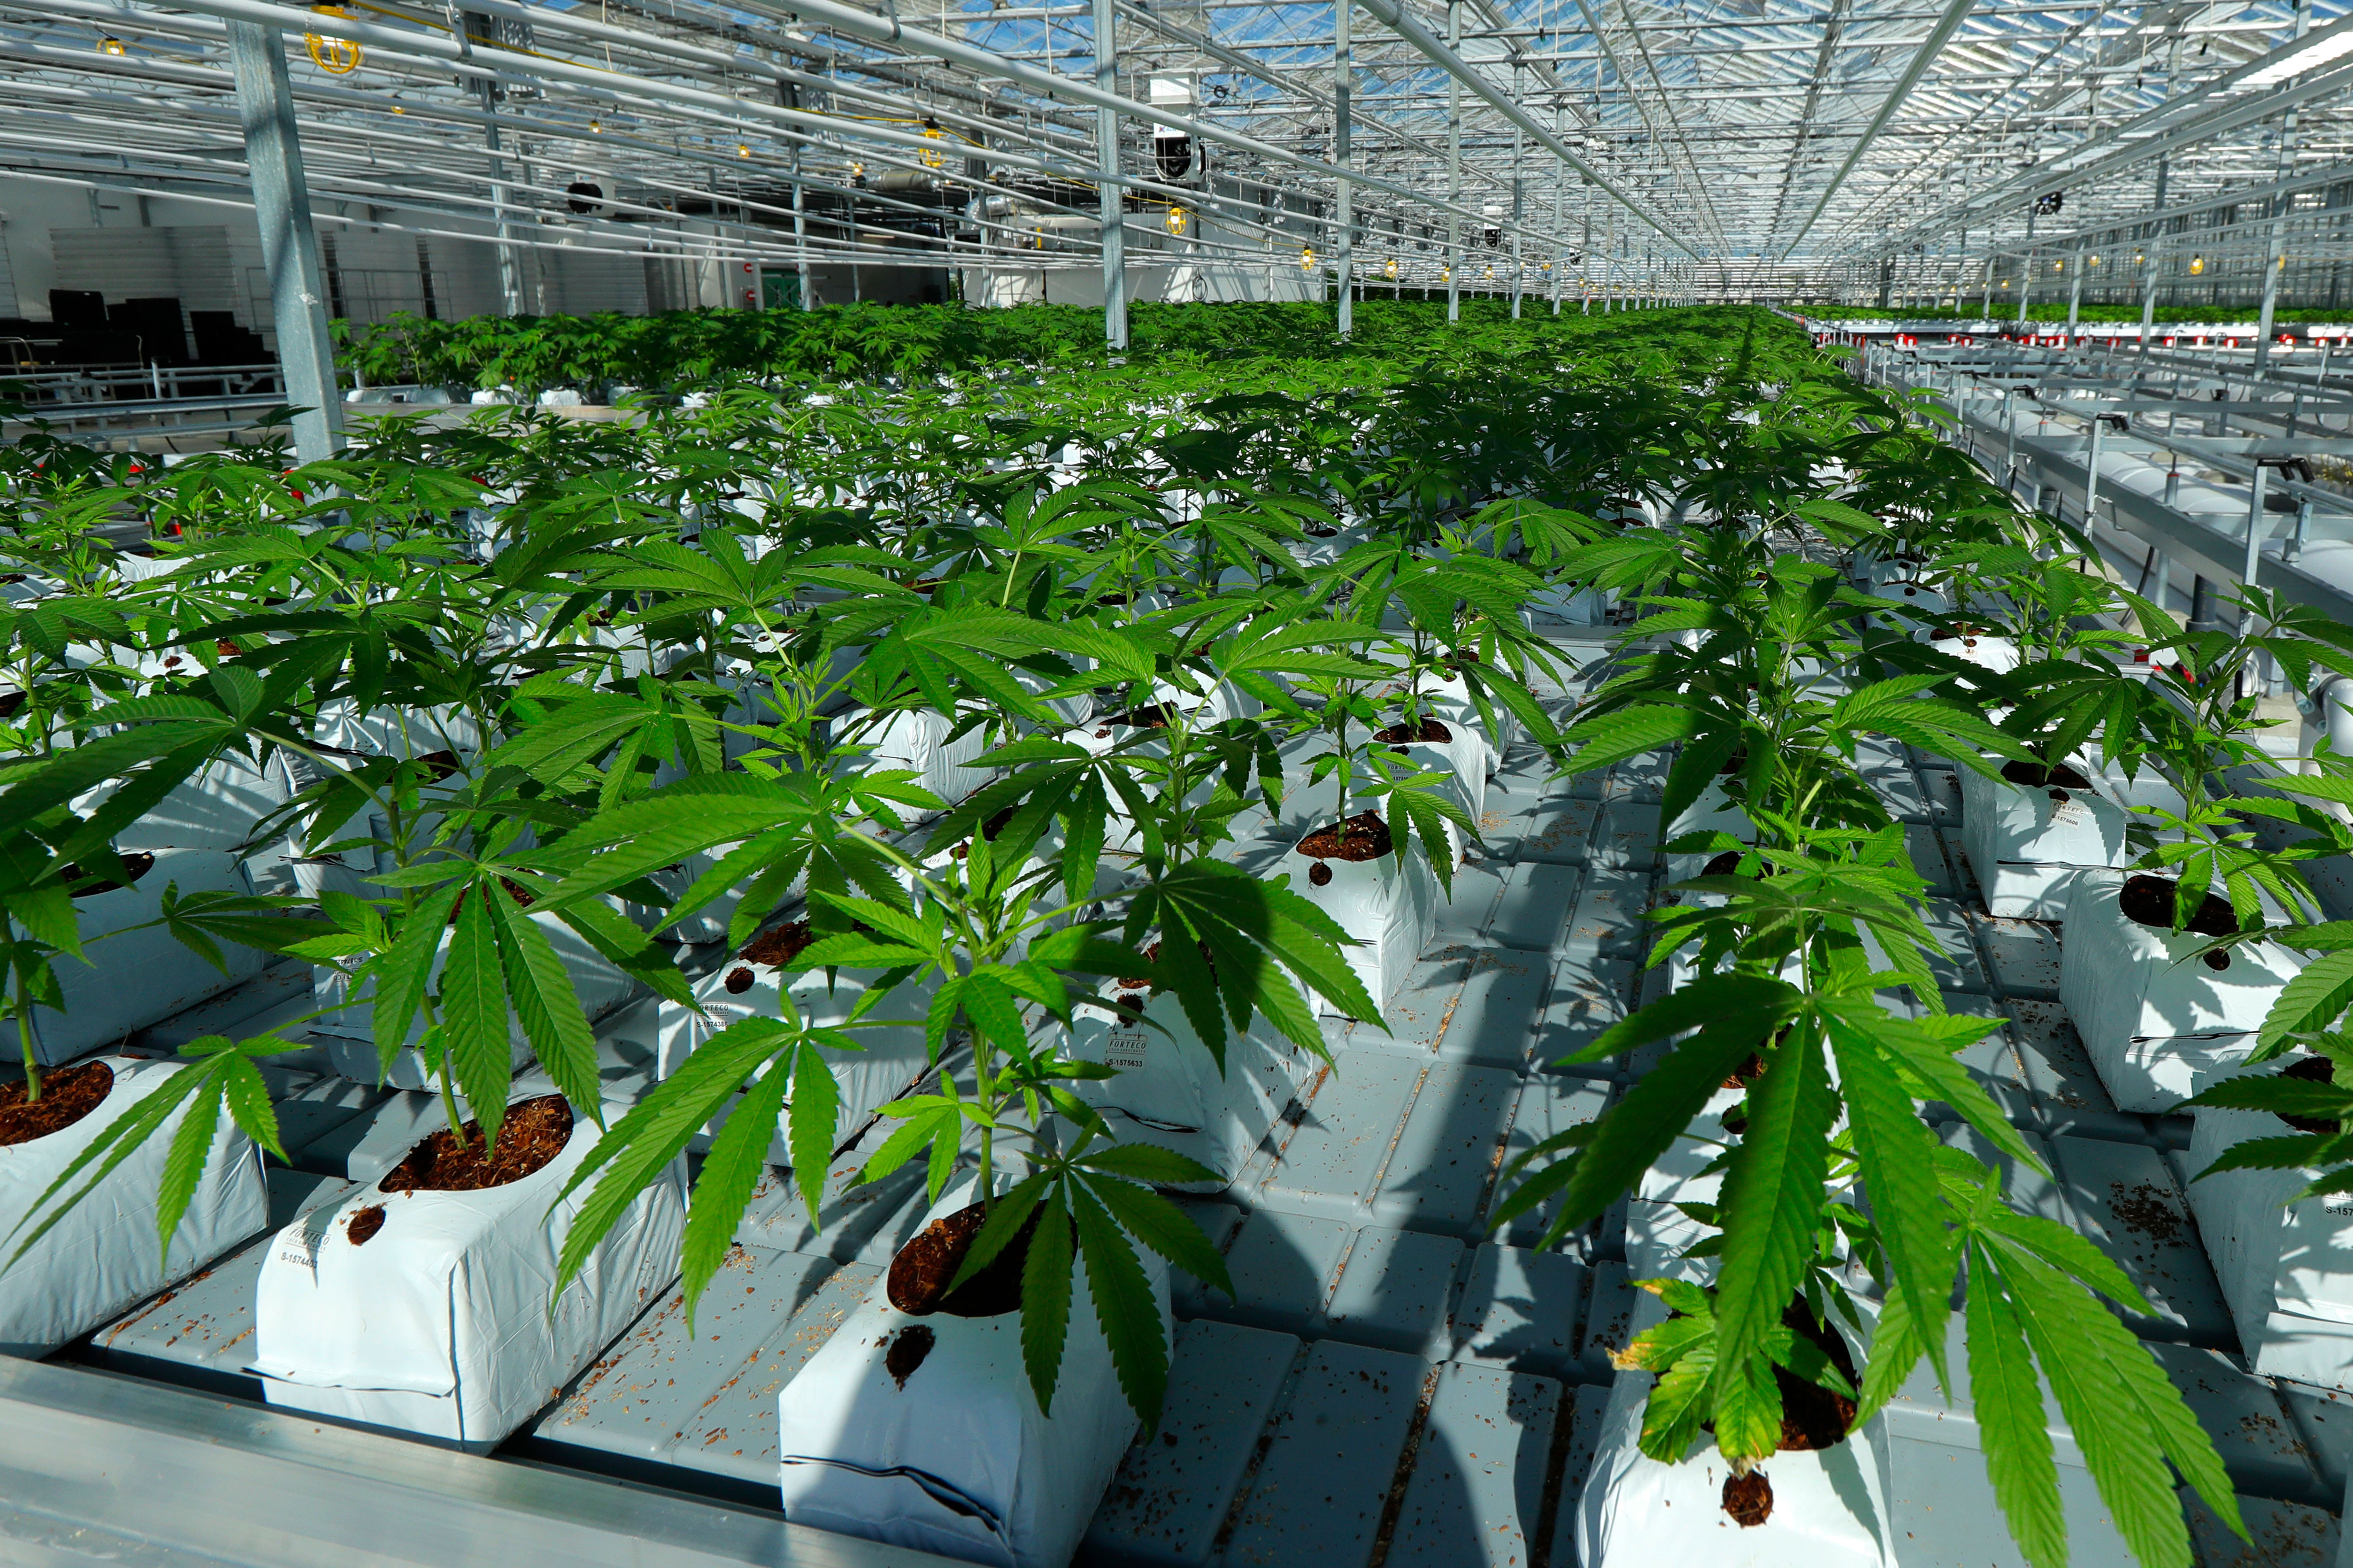 <p>Marijuana plants grow in a massive tomato greenhouse being renovated to grow pot in Delta, British Columbia, that is operated by Pure Sunfarms, a joint venture between tomato grower Village Farms International, and a licensed medical marijuana producer, Emerald Health Therapeutics.</p>